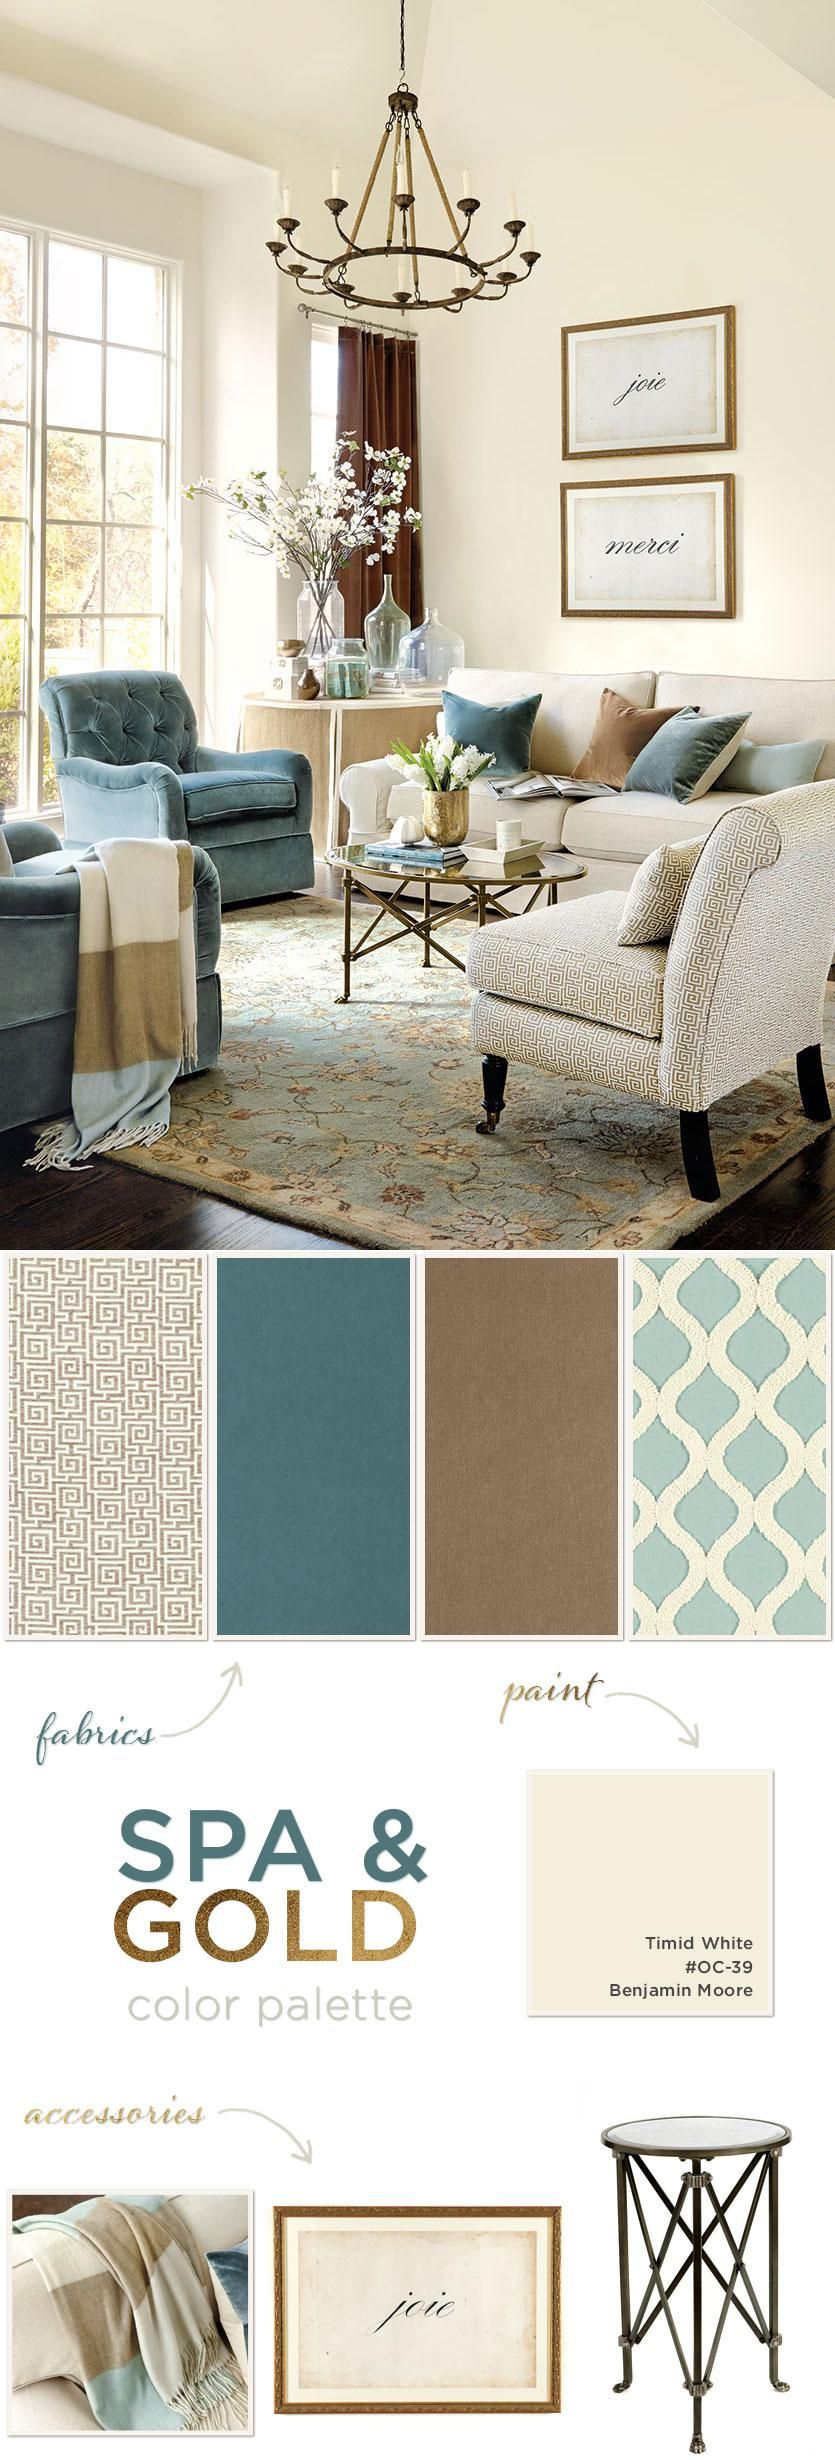 Inspired Color Palettes For Spring 2014  Spa Cozy And Formal Endearing Color Scheme Living Room 2018